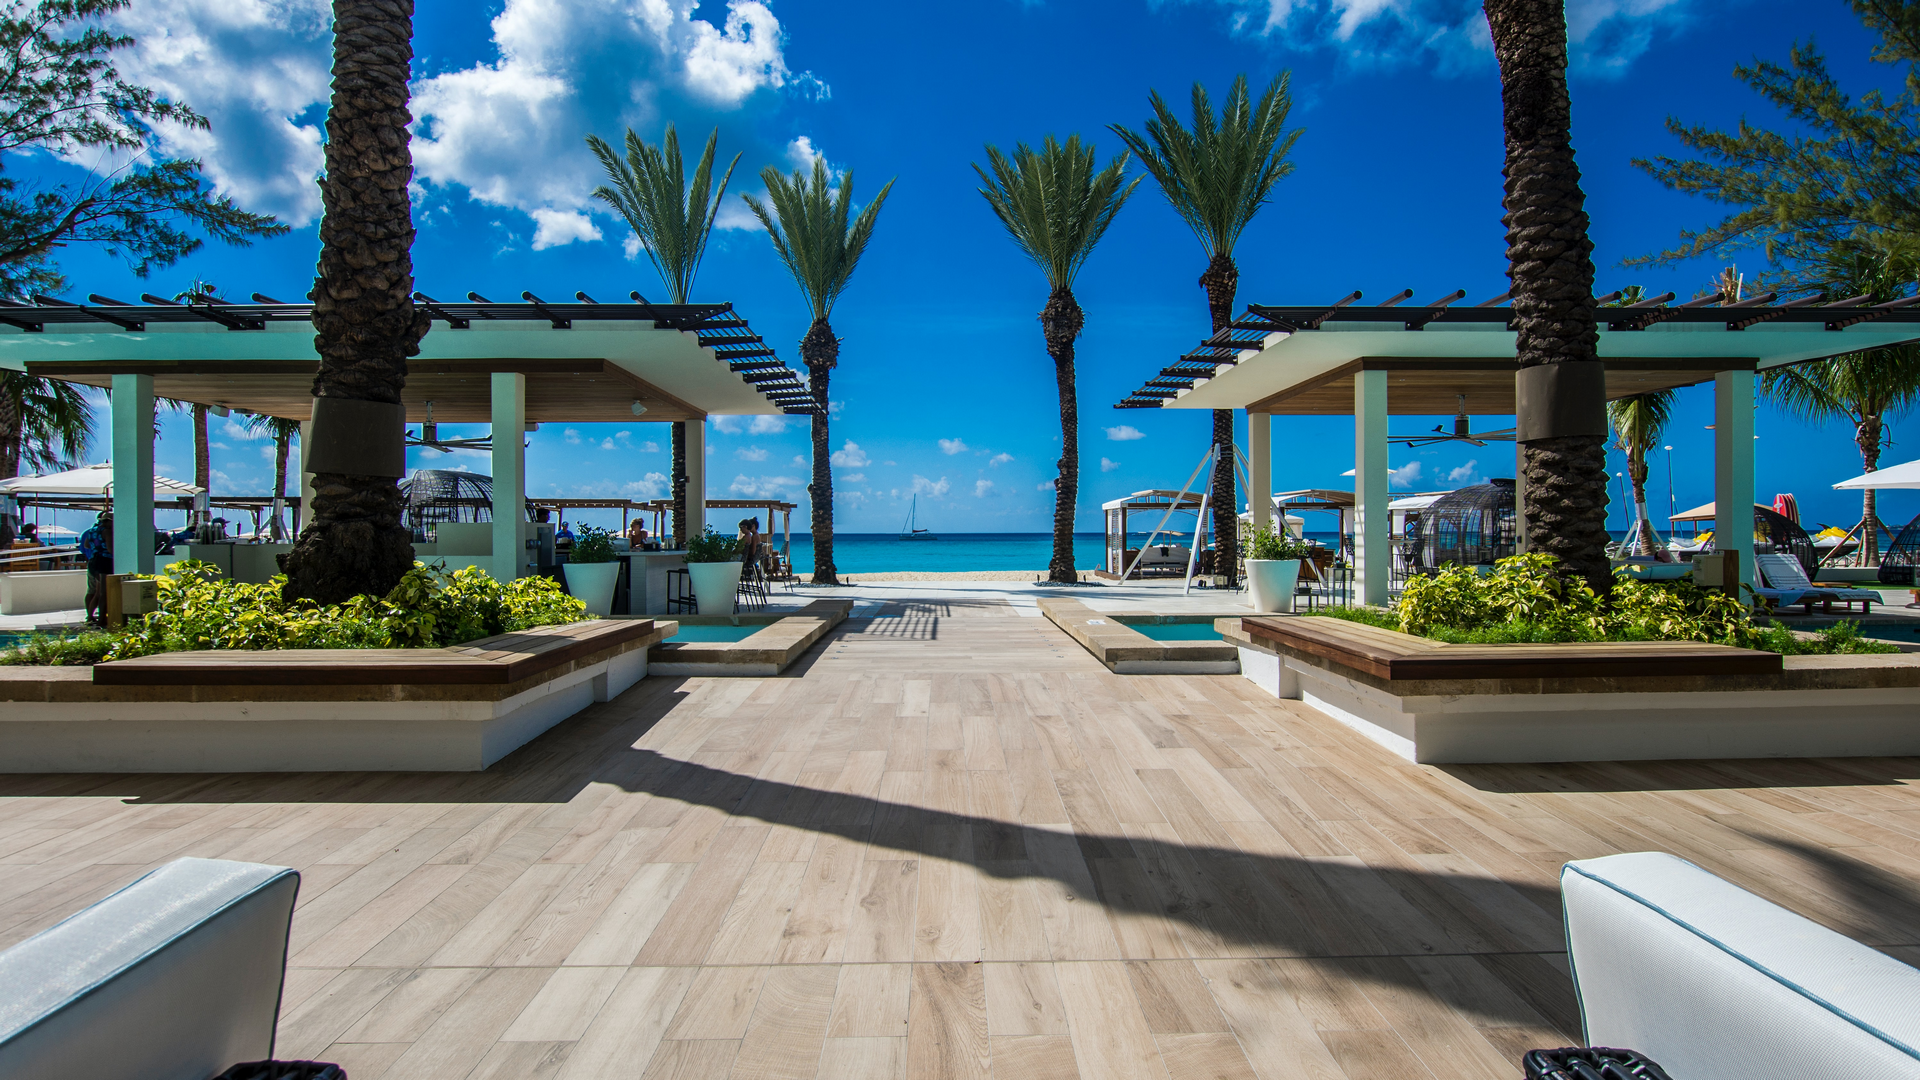 A view in Cayman Islands